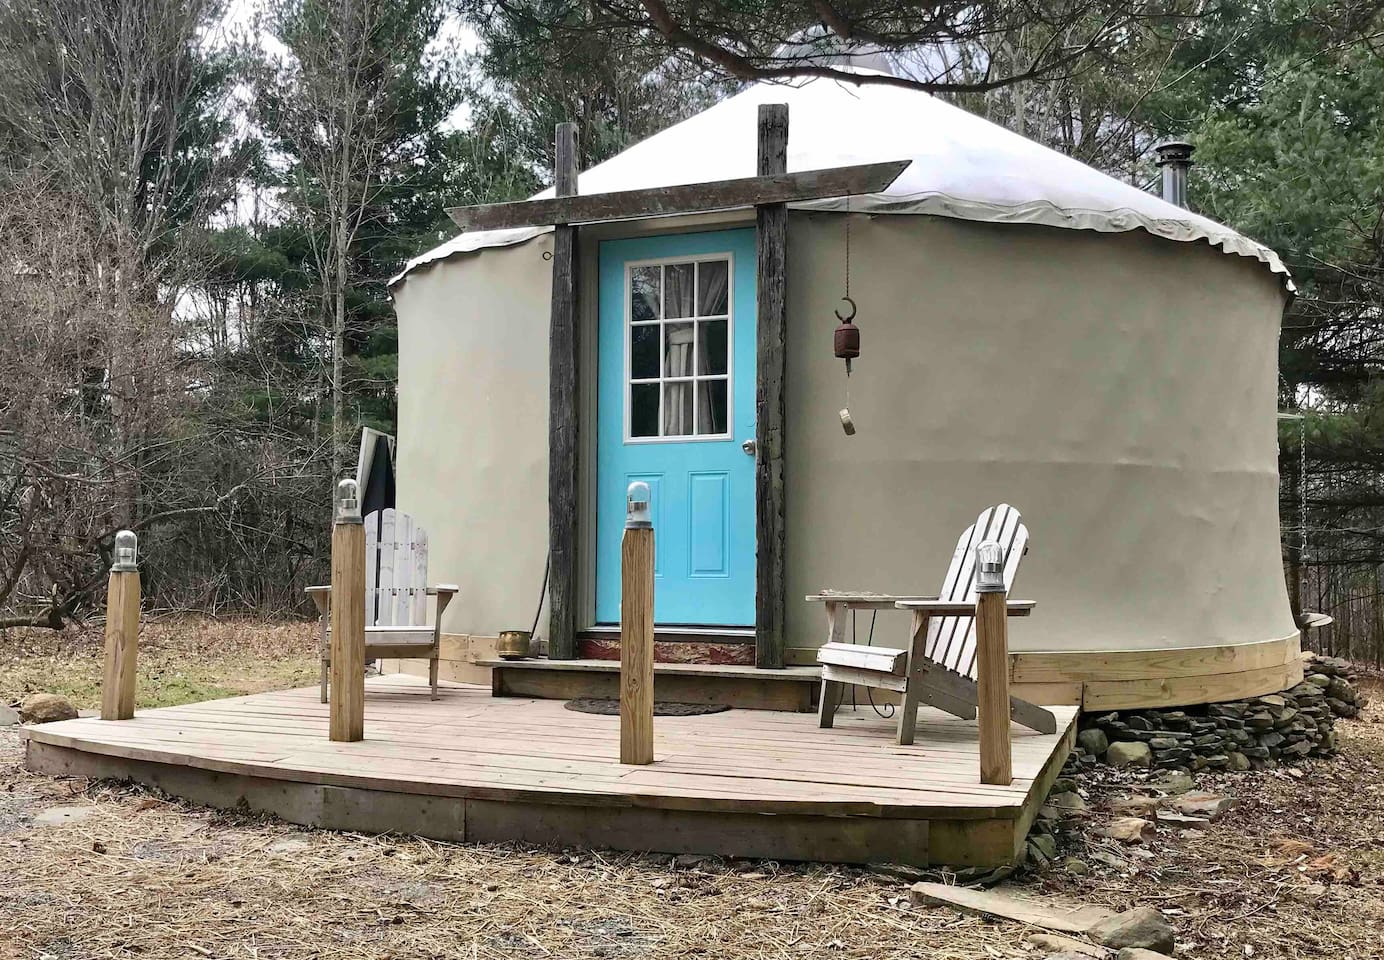 Enjoy our cozy 20' yurt in a peaceful and secluded area on the farm!  Get away from it all and relax!